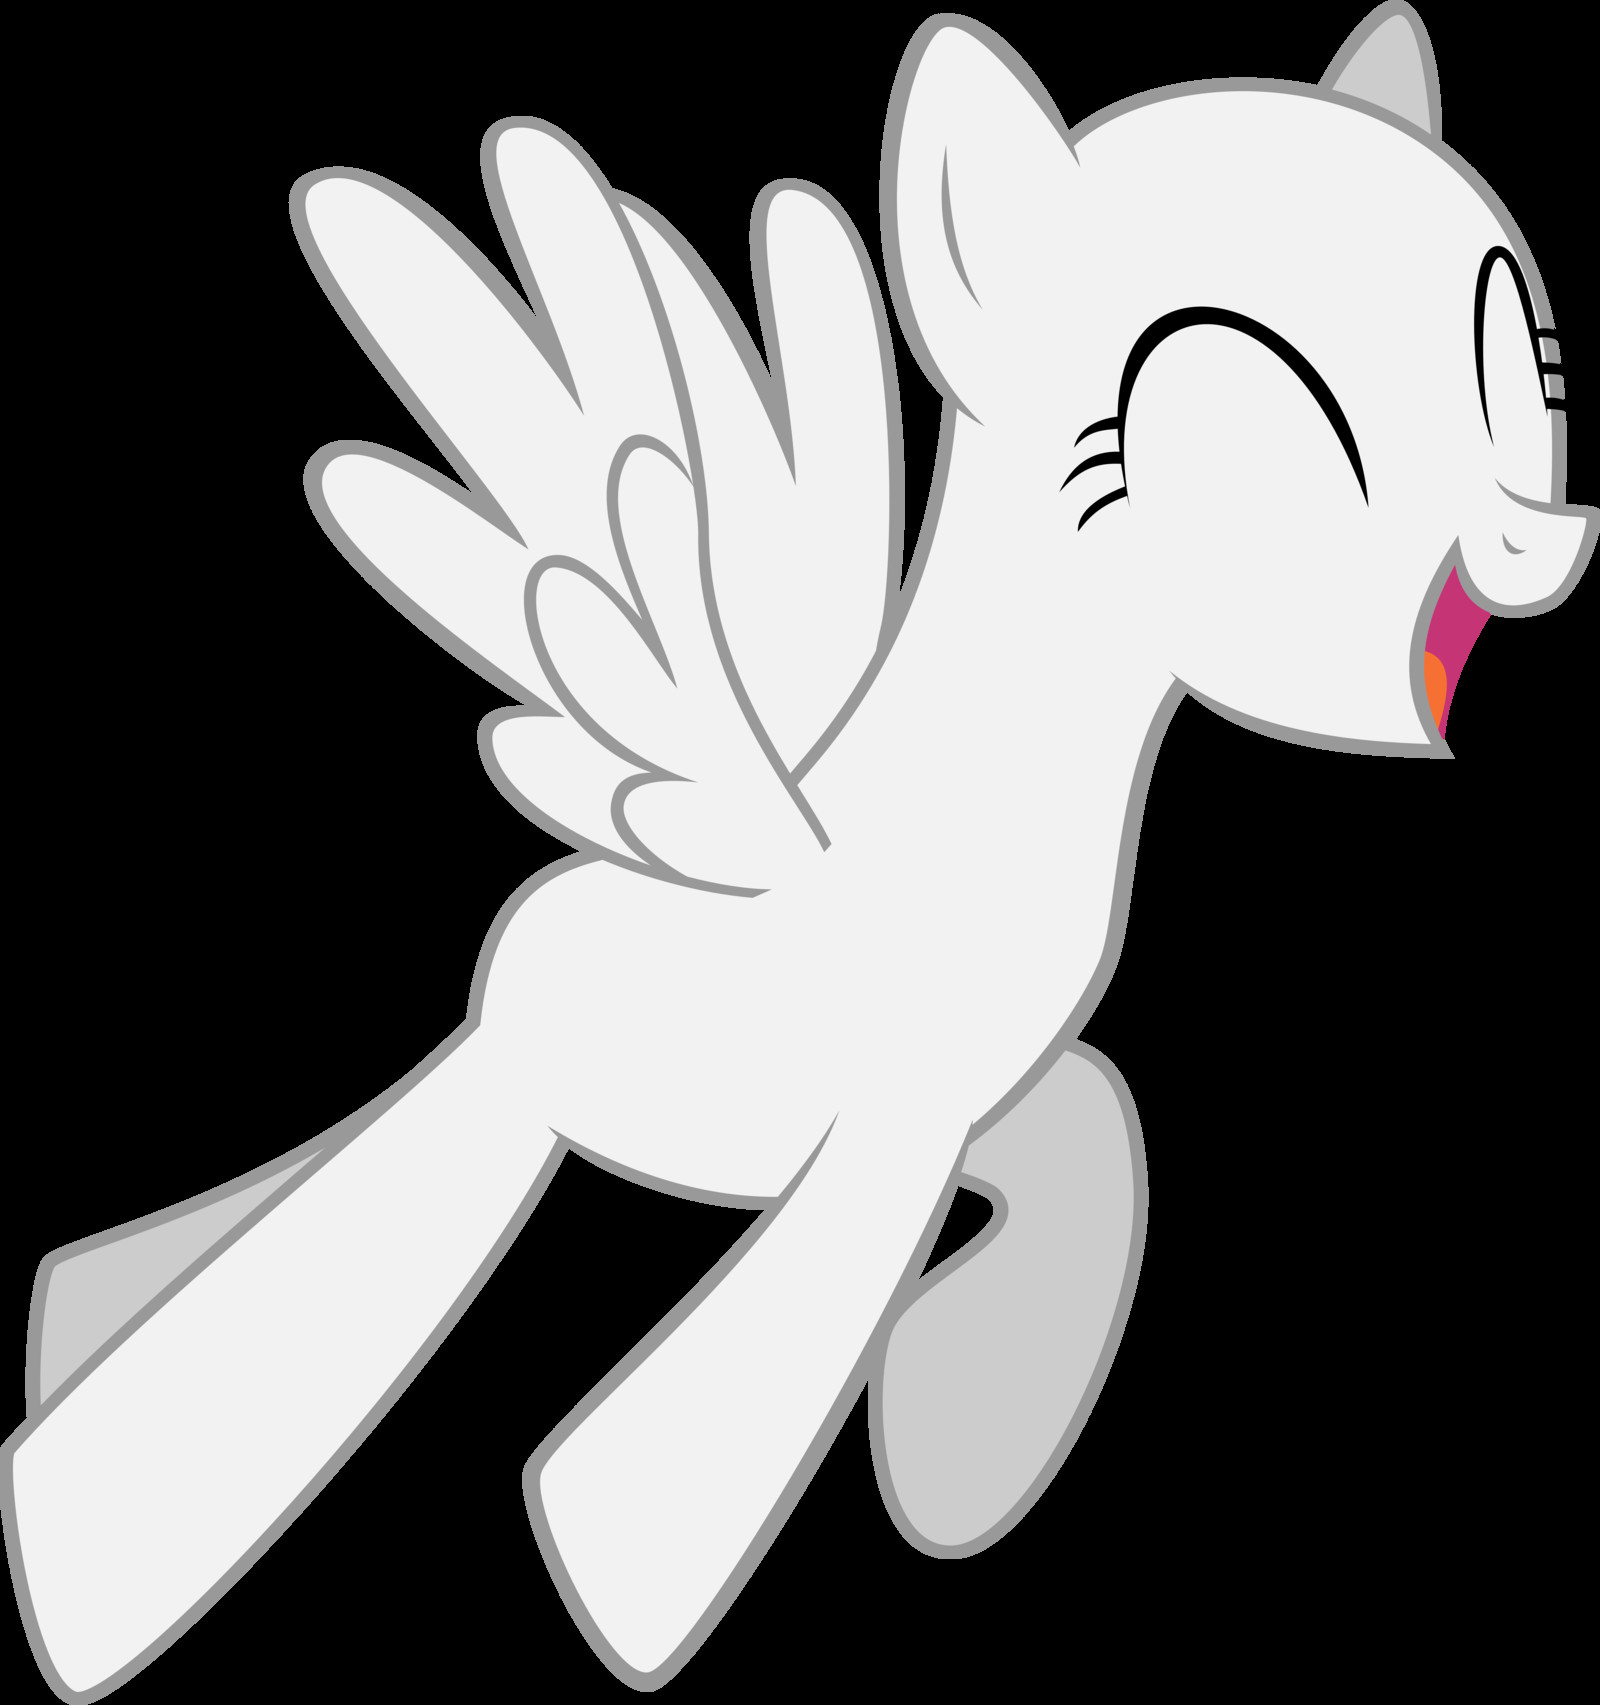 Blank My Little Pony Template Mlp Pegasus Base Google Search Mlp Bases